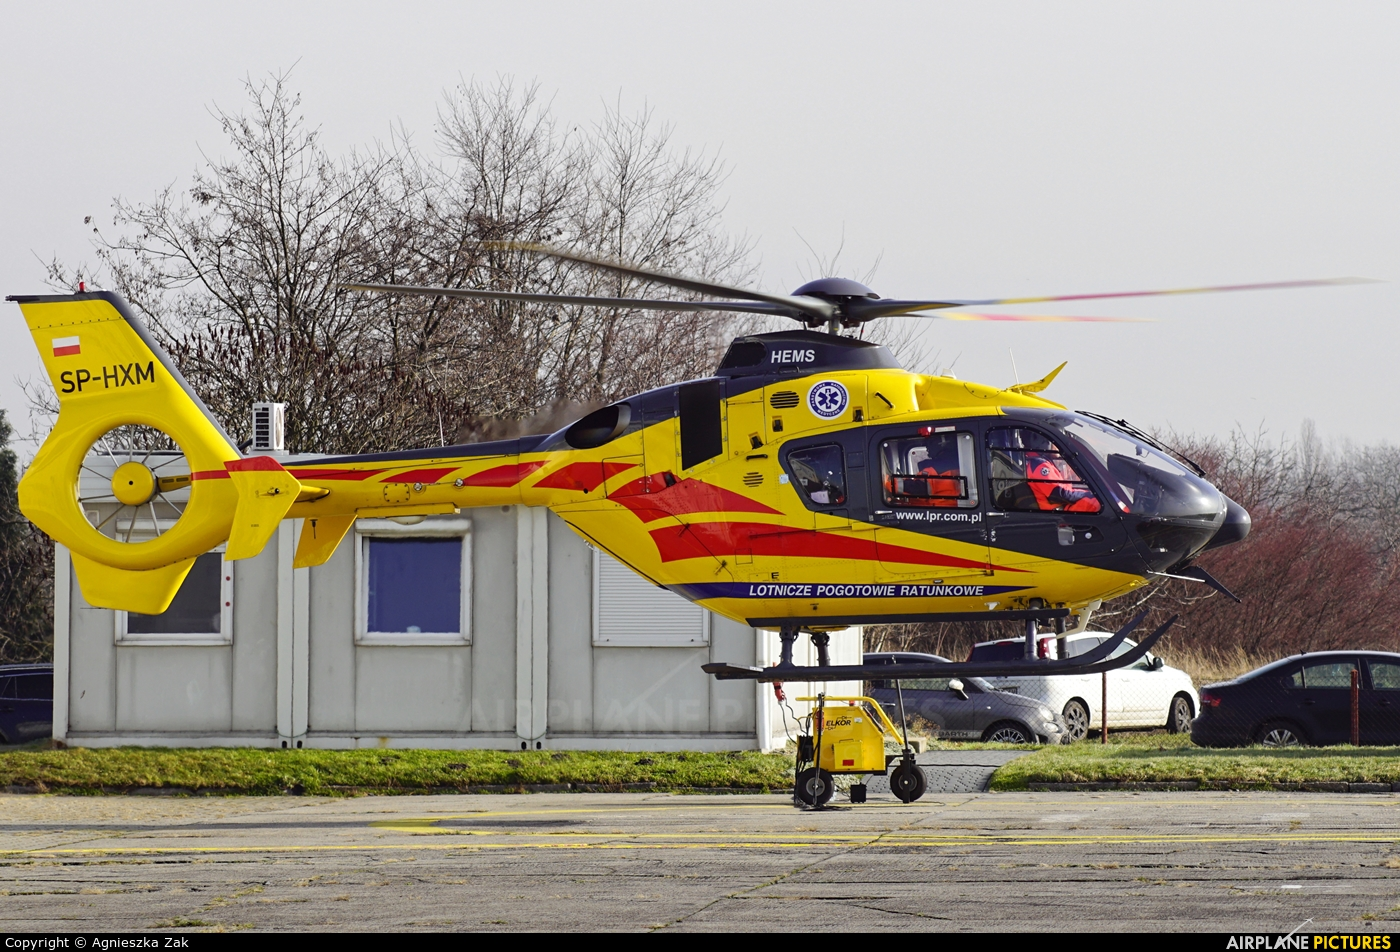 Polish Medical Air Rescue - Lotnicze Pogotowie Ratunkowe SP-HXM aircraft at Gliwice